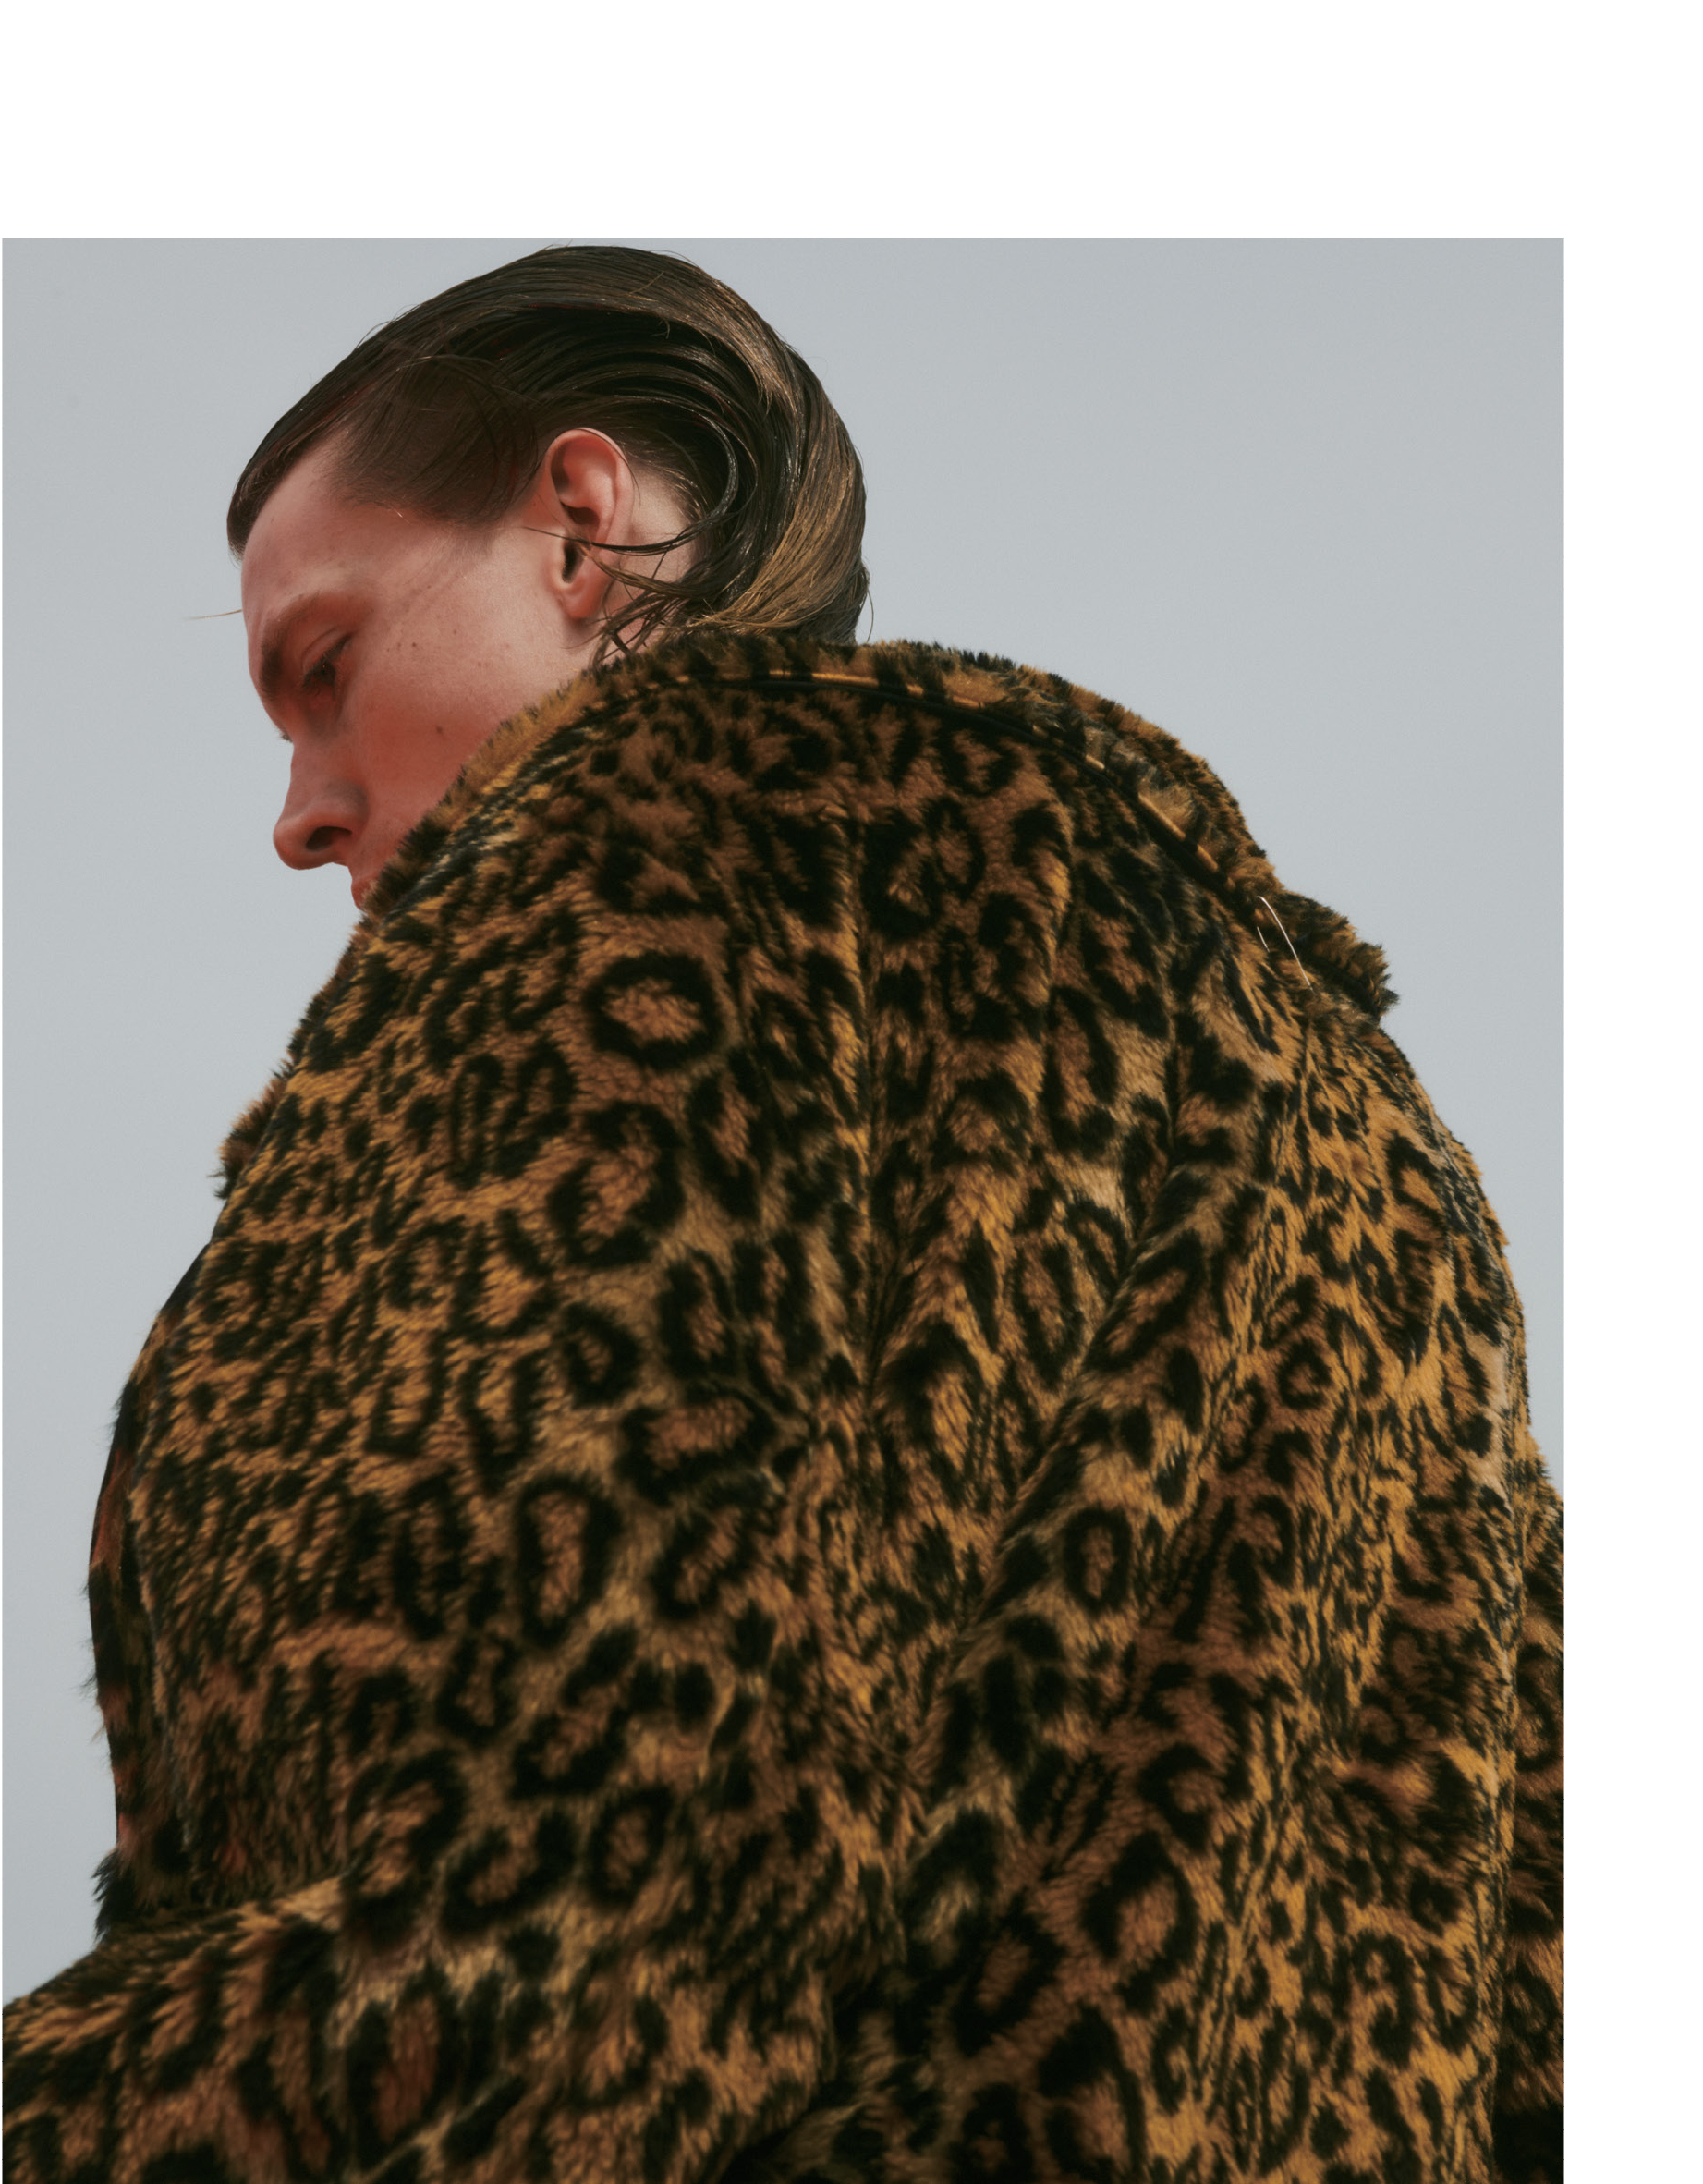 NEPENTHES AW183.2.jpg